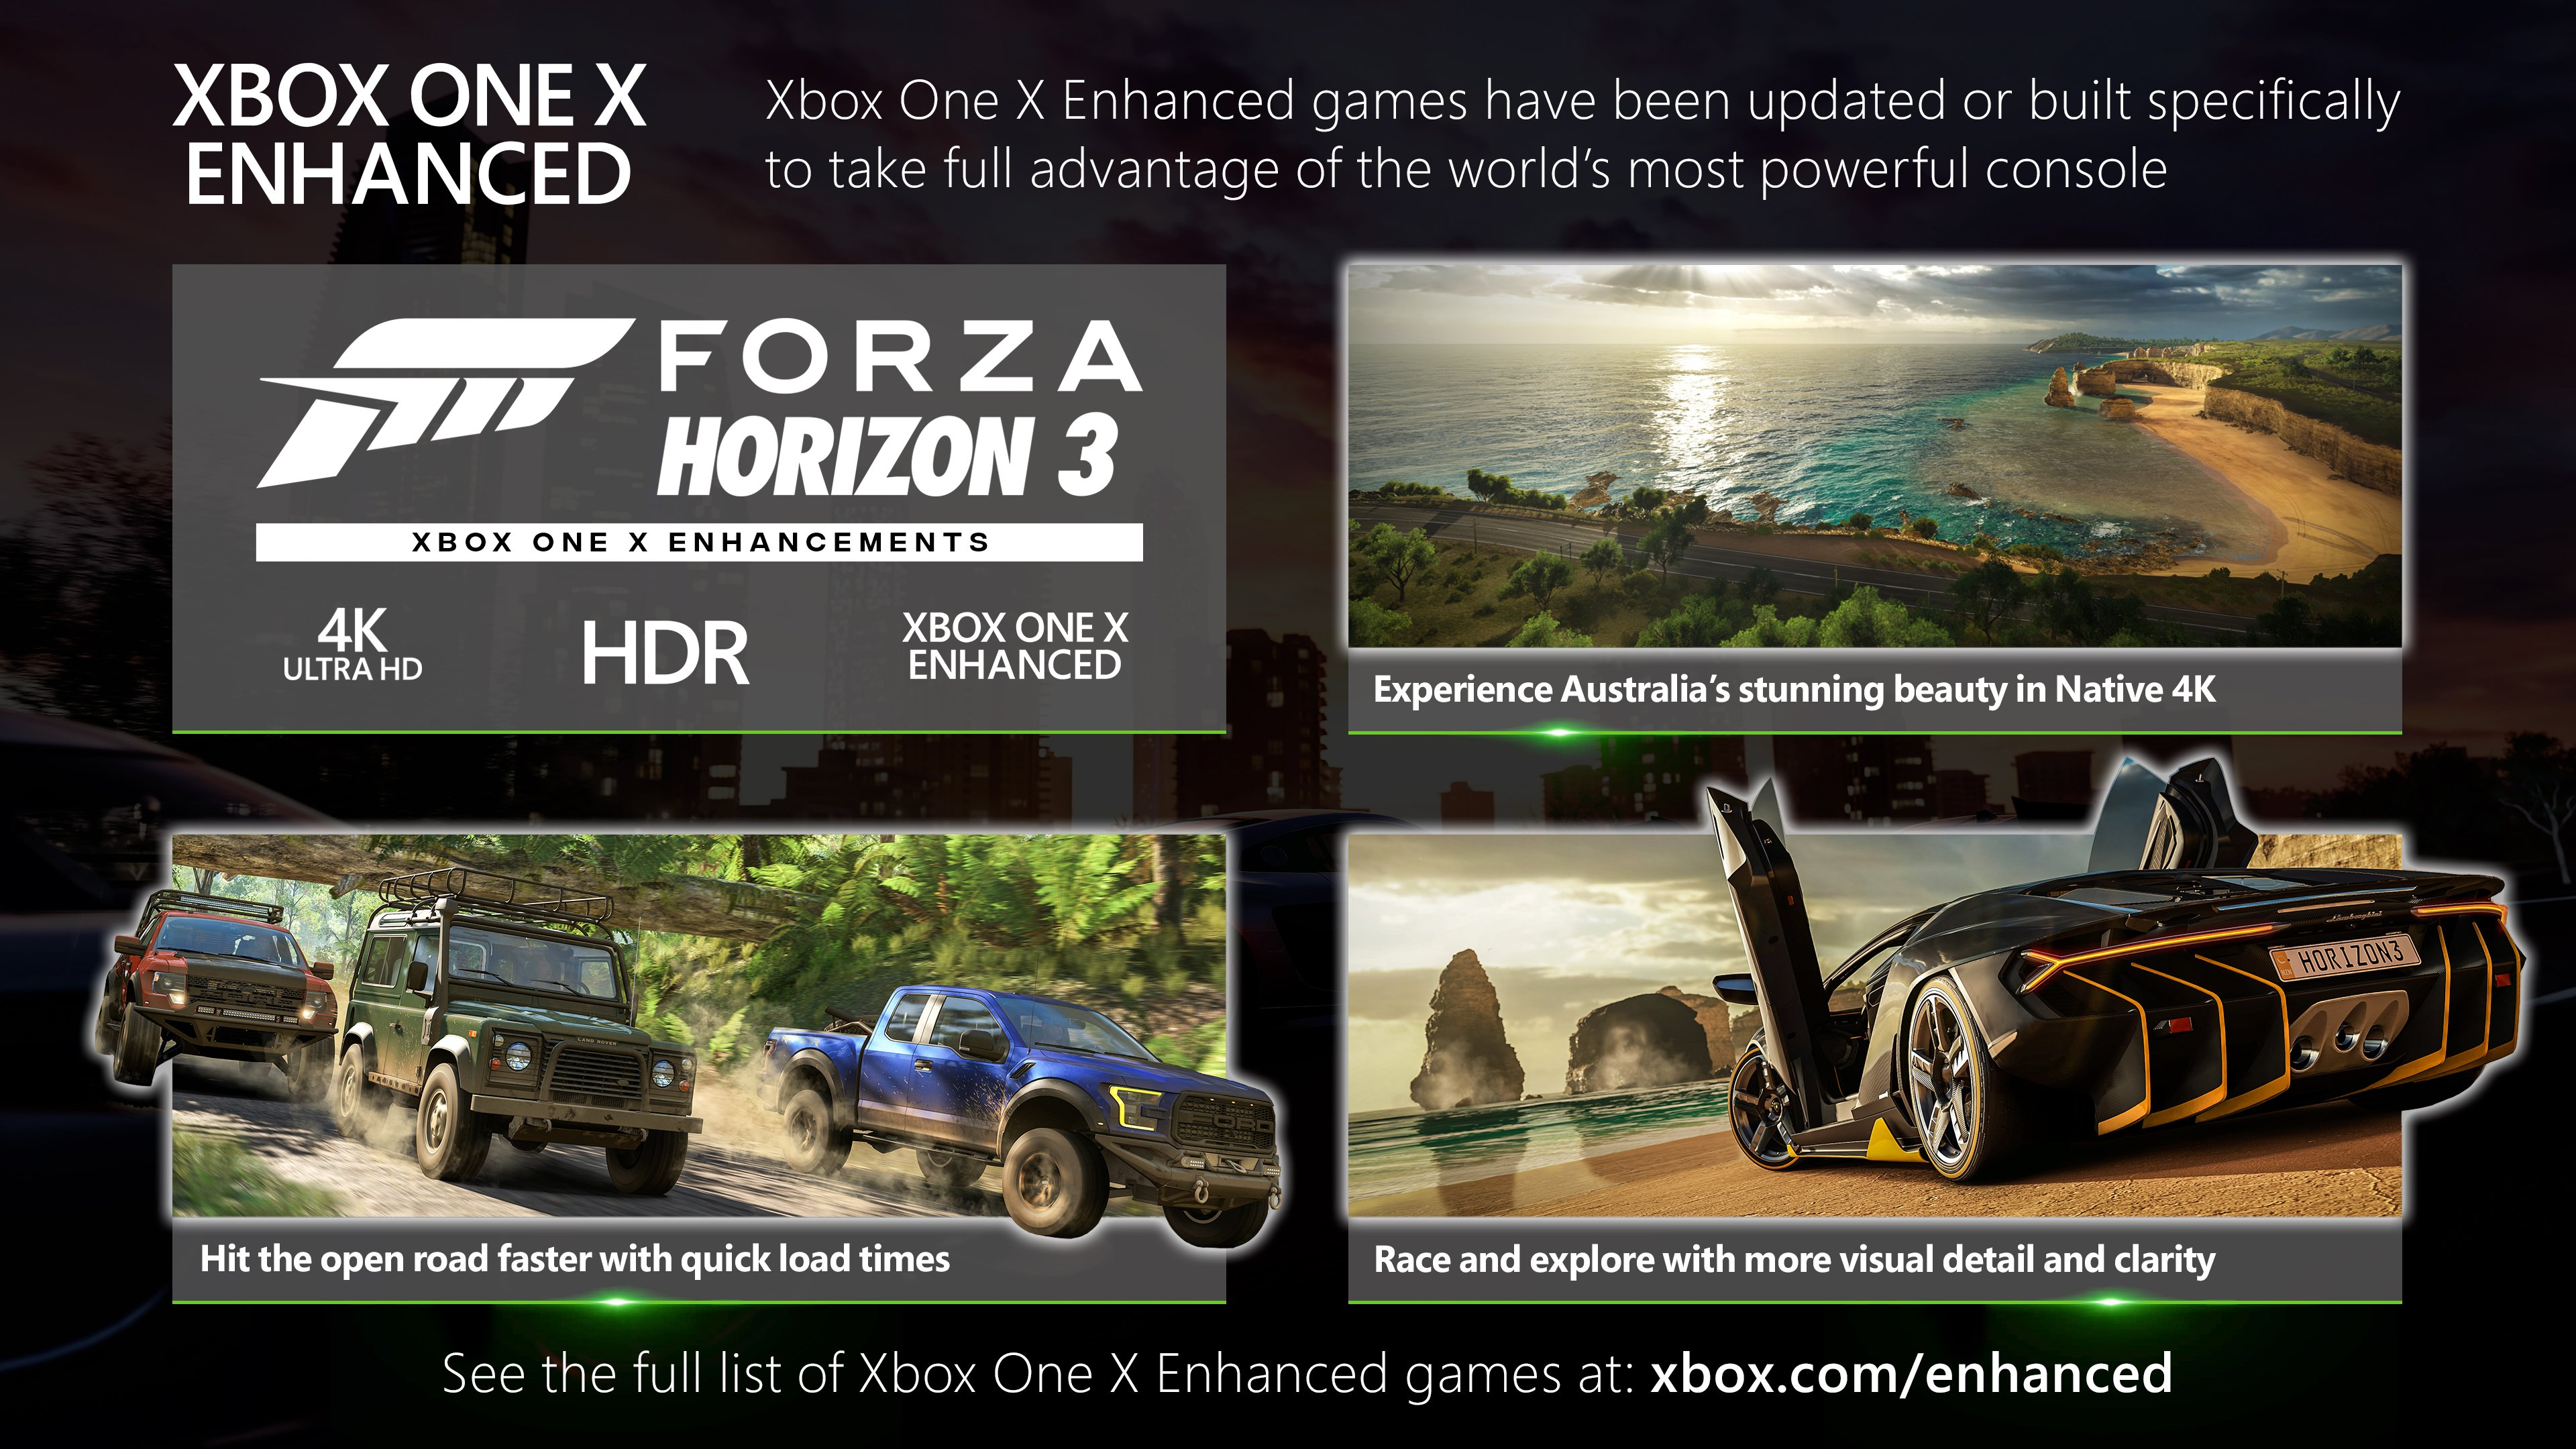 Forza Horizon 3 Xbox One X Enhanced Overview